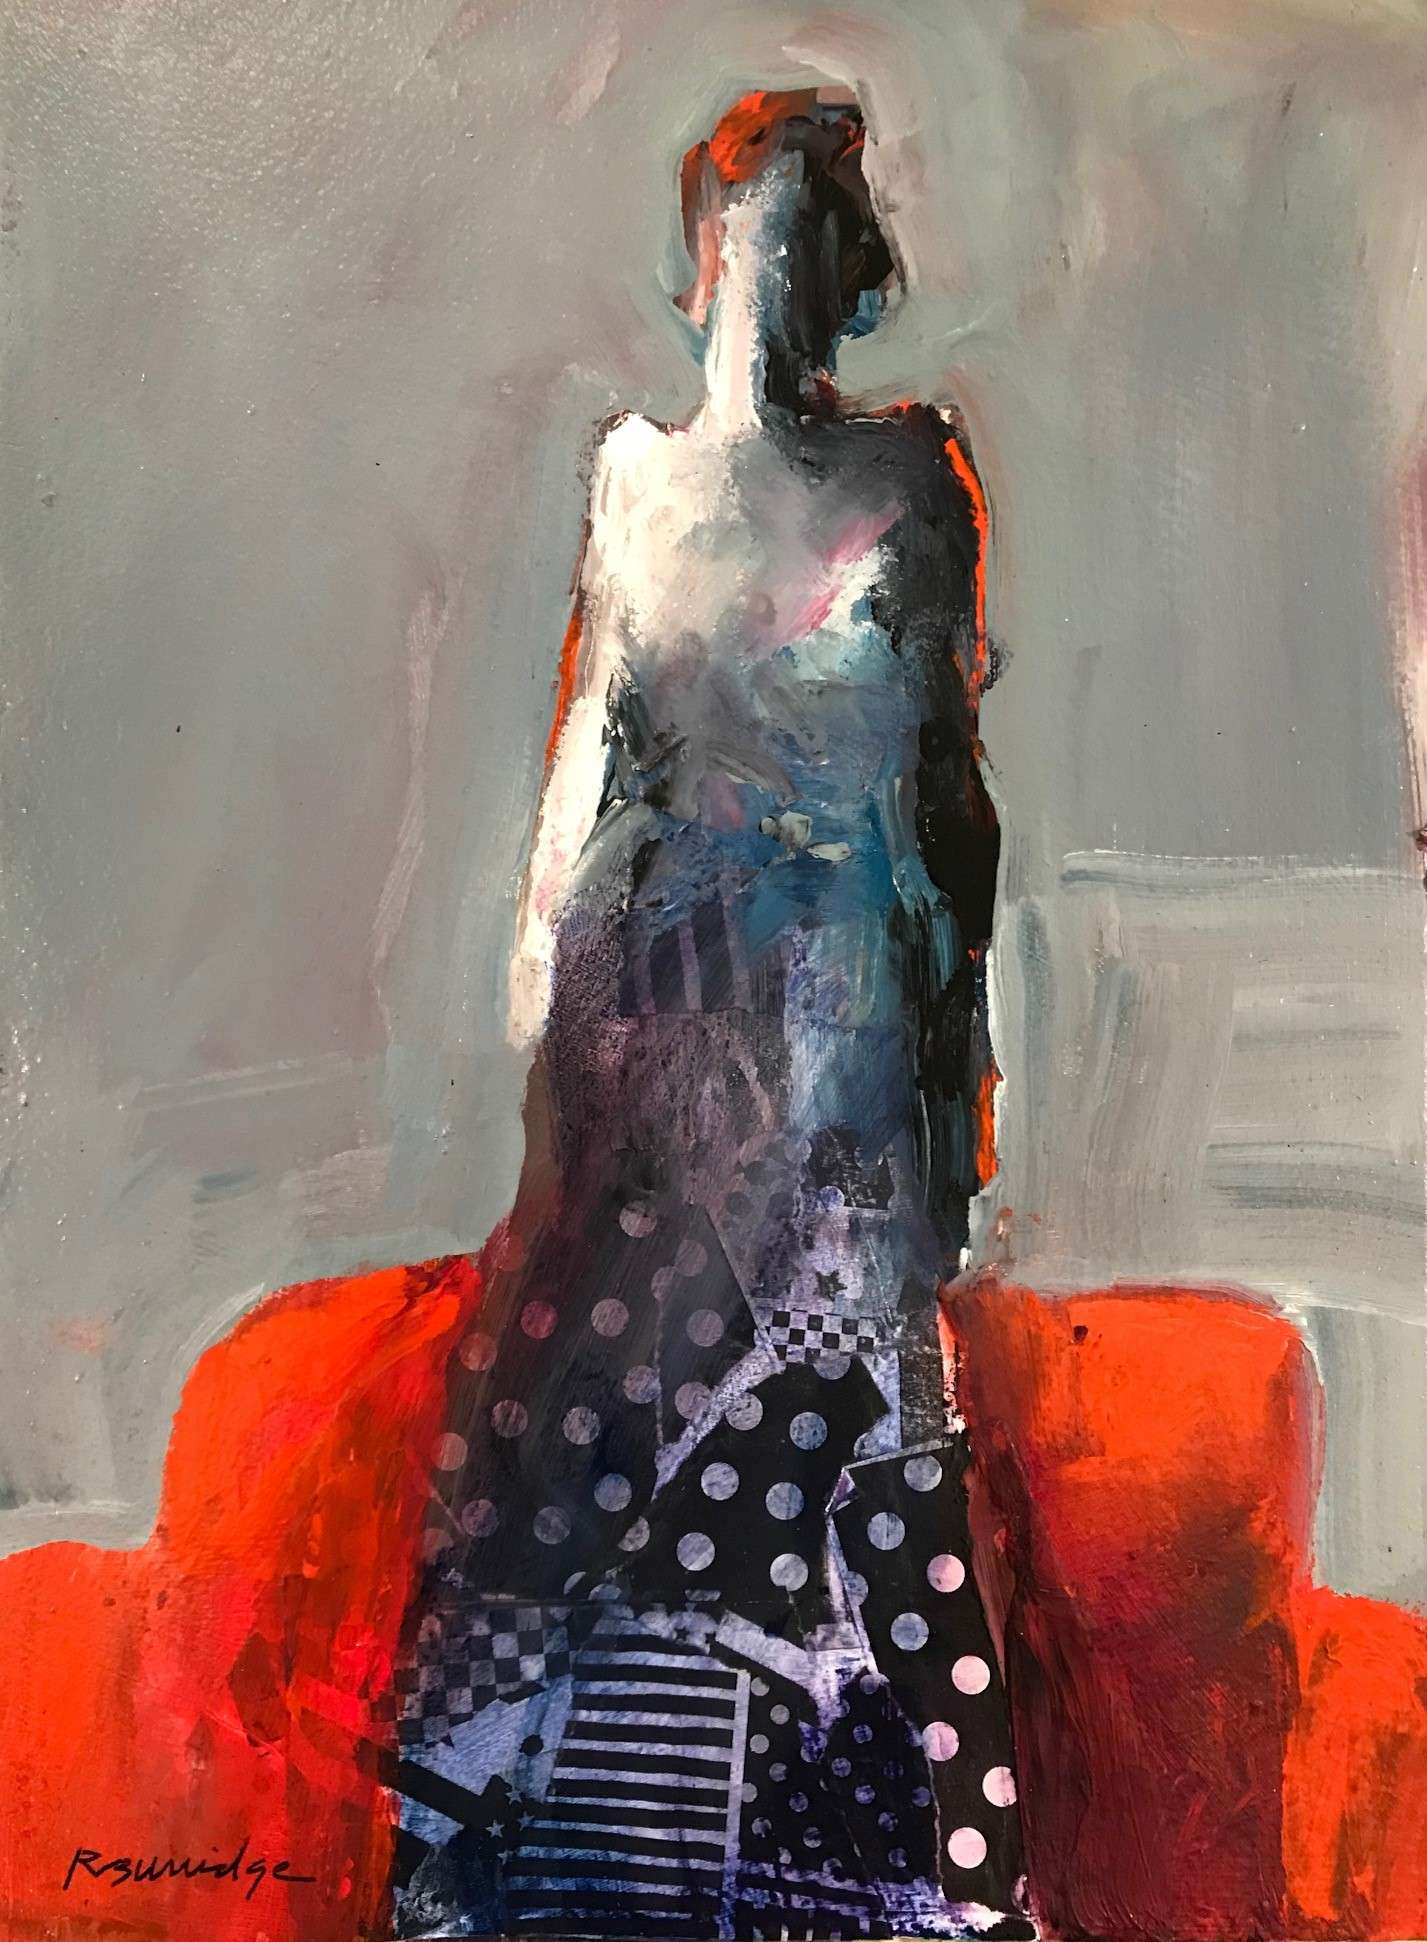 Robert Burridge - Acrylic Abstract Painting of Female Figure in red, black and white.